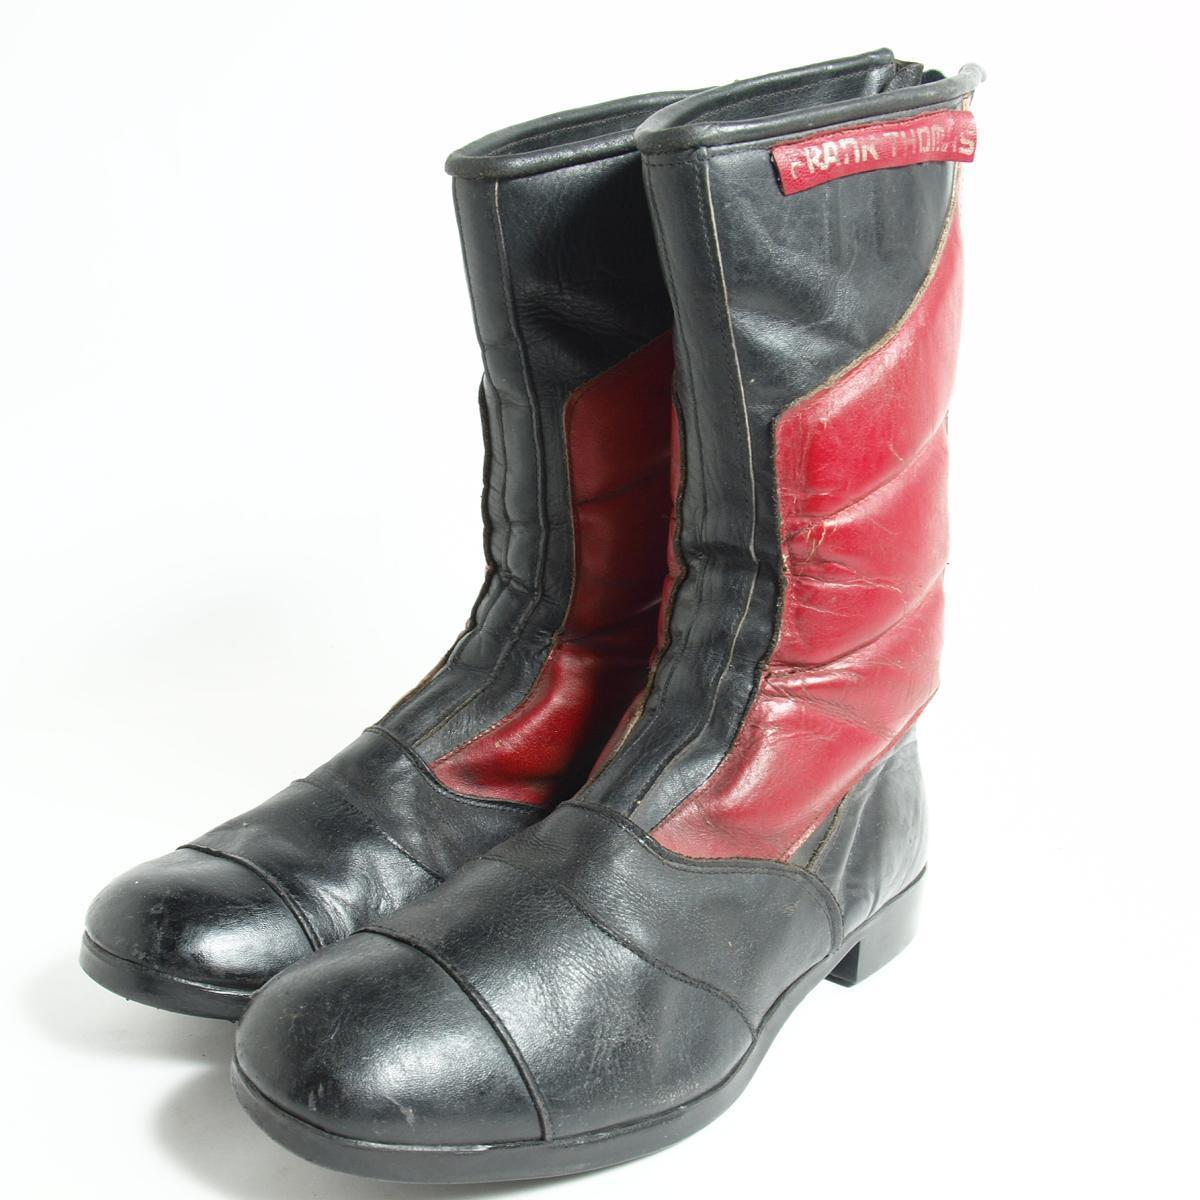 Vintage Clothing Jam Motorcycle Boots Men 25 5 Frankthomas Bok2436